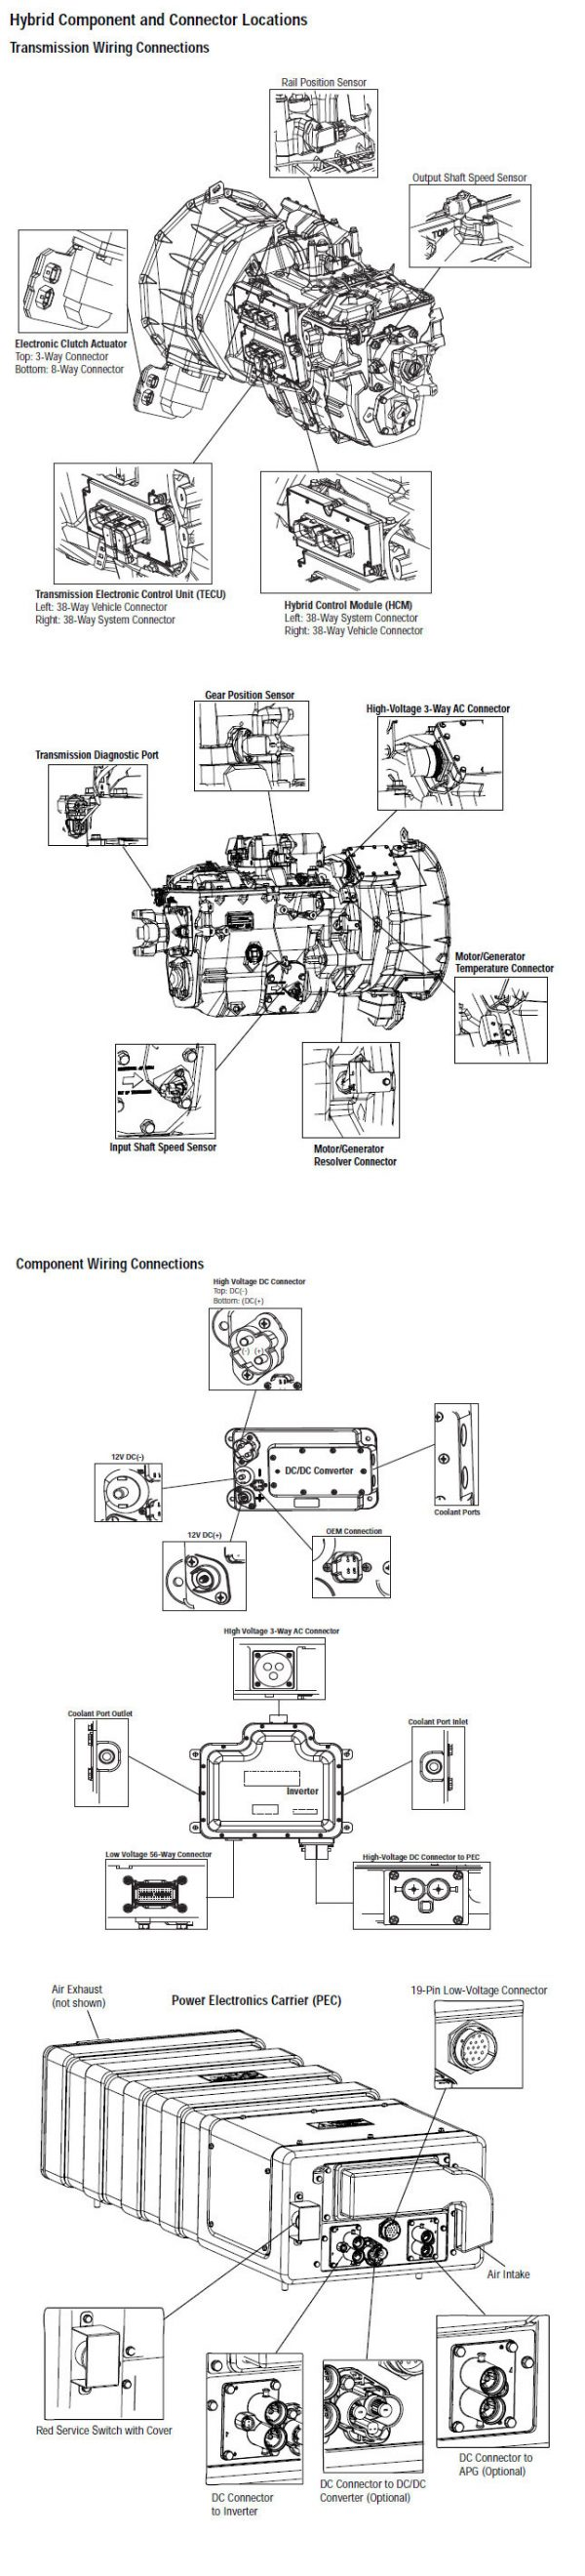 Eaton Hybrid Component and Connector Locations MY08 Systems